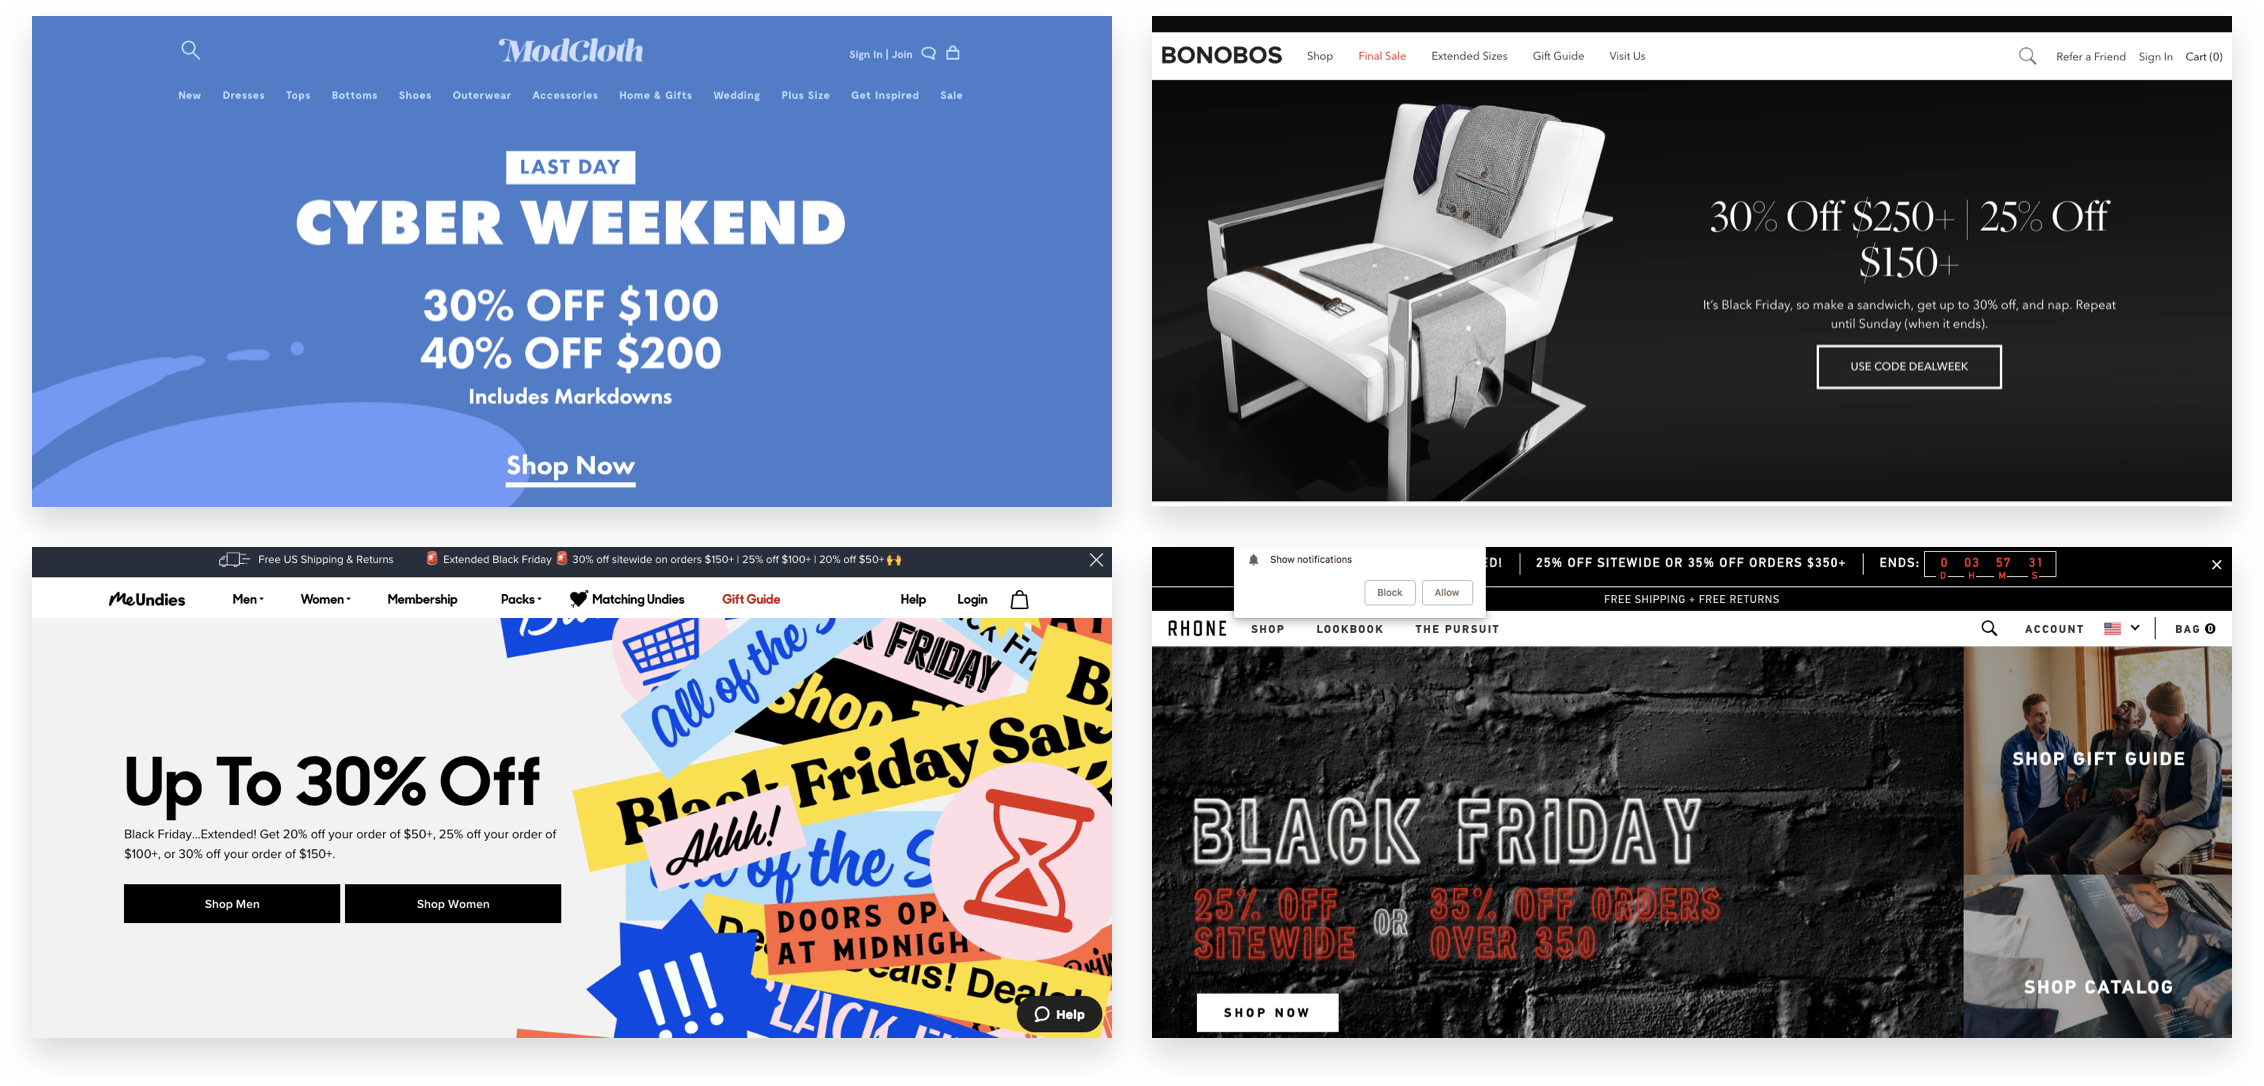 Examples of Tiered Discount Holiday Campaigns and Offers